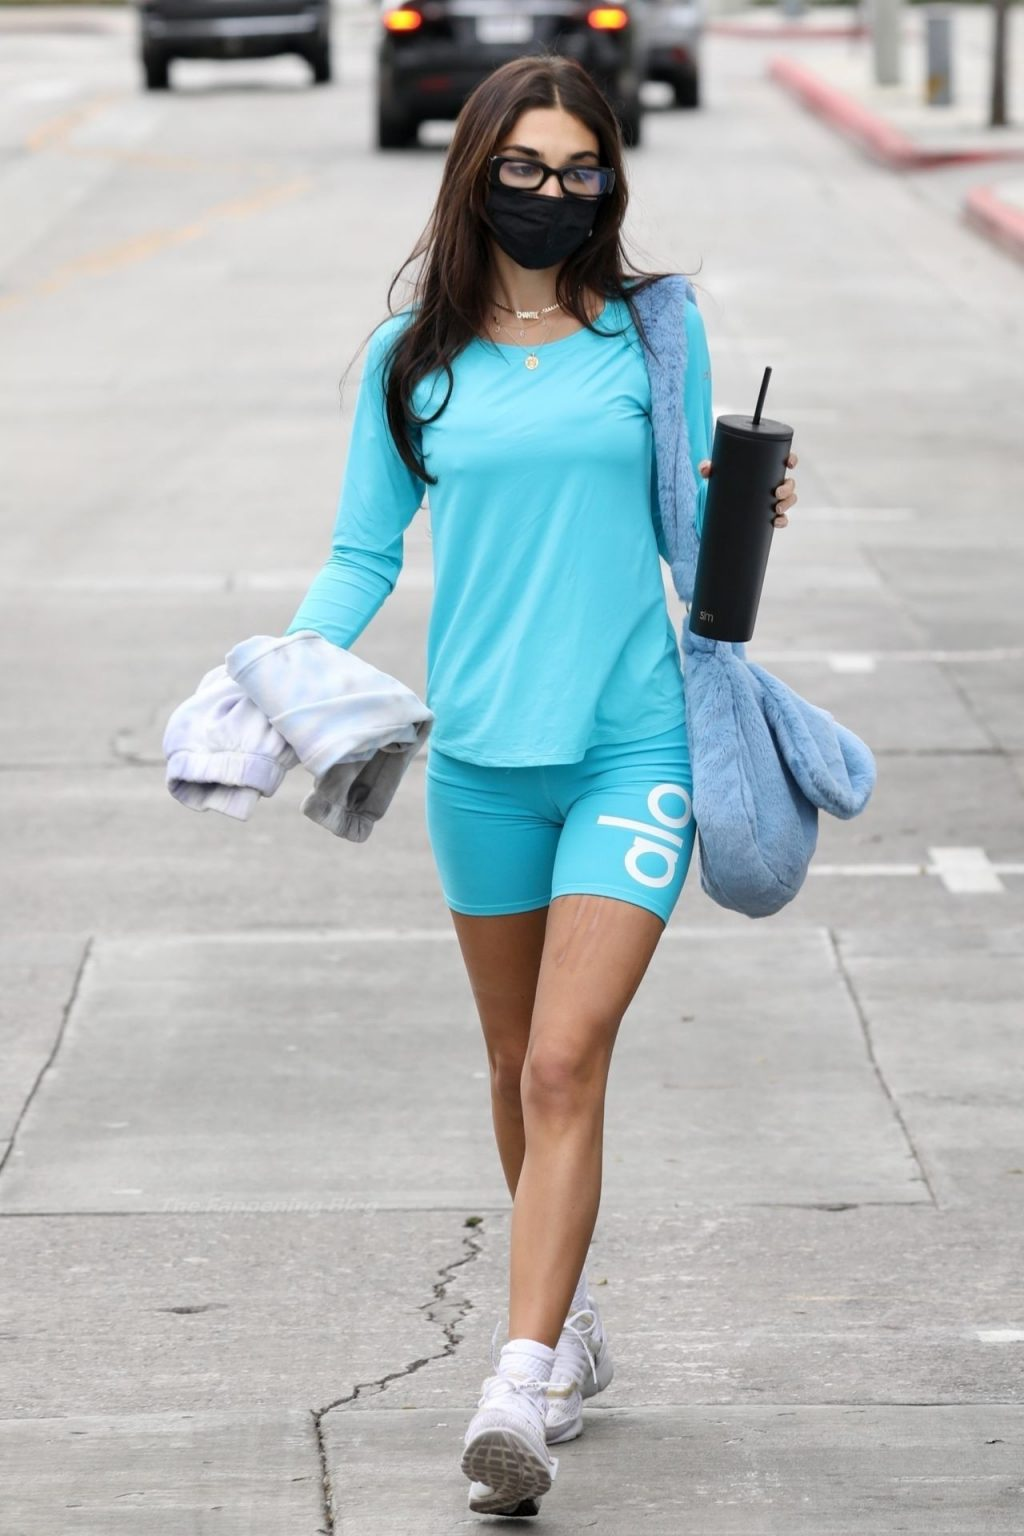 Chantel Jeffries Shows Her Cameltoe in a Blue Yoga Outfit for a Pilates Class (19 Photos)